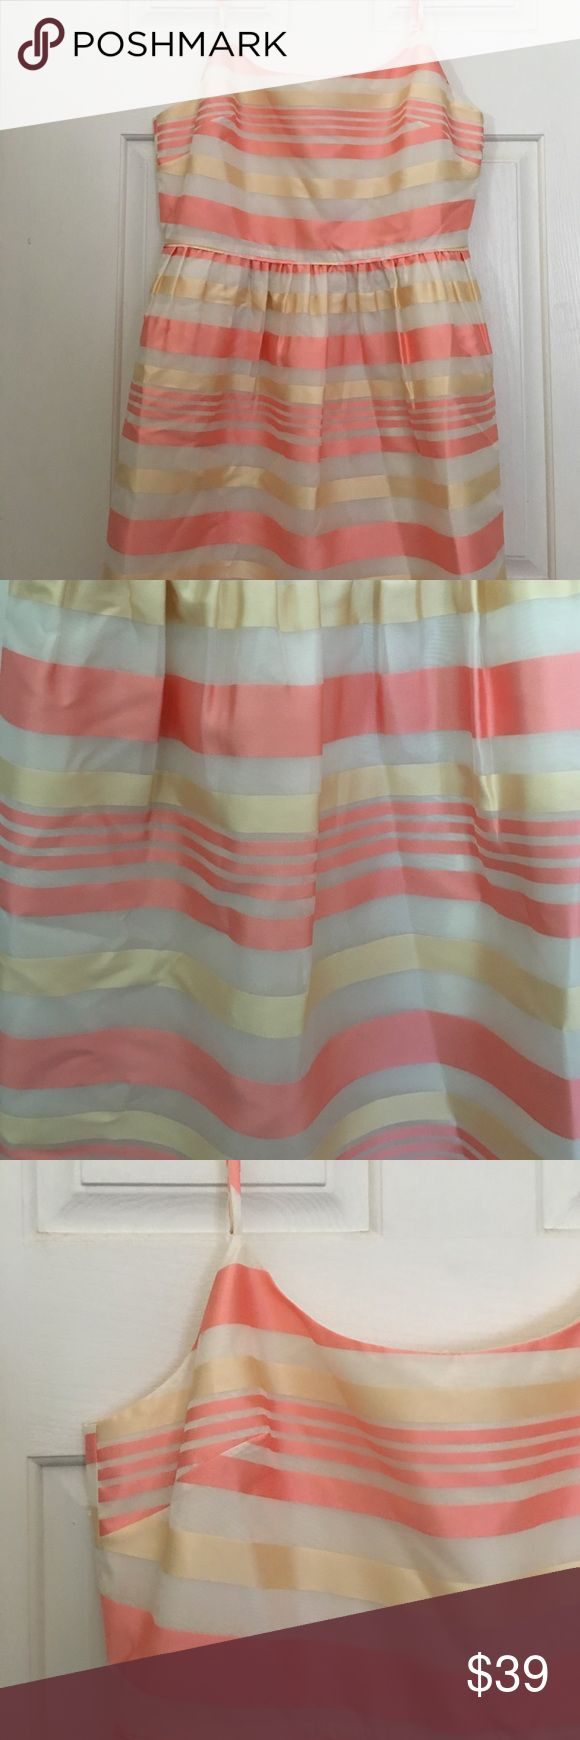 J.Crew Factory Striped Occasion Dress! NWT J.Crew Factory Occasion Dress. Champagne and soft pink horizontal stripe lined with off-white. Pockets! Side zip. Adjustable spaghetti strap. Falls above knee. Factory size 14, fits like a jcrew 14 maybe a bit roomier. Never worn! Perfect for a casual summer wedding! J. Crew Factory Dresses Wedding